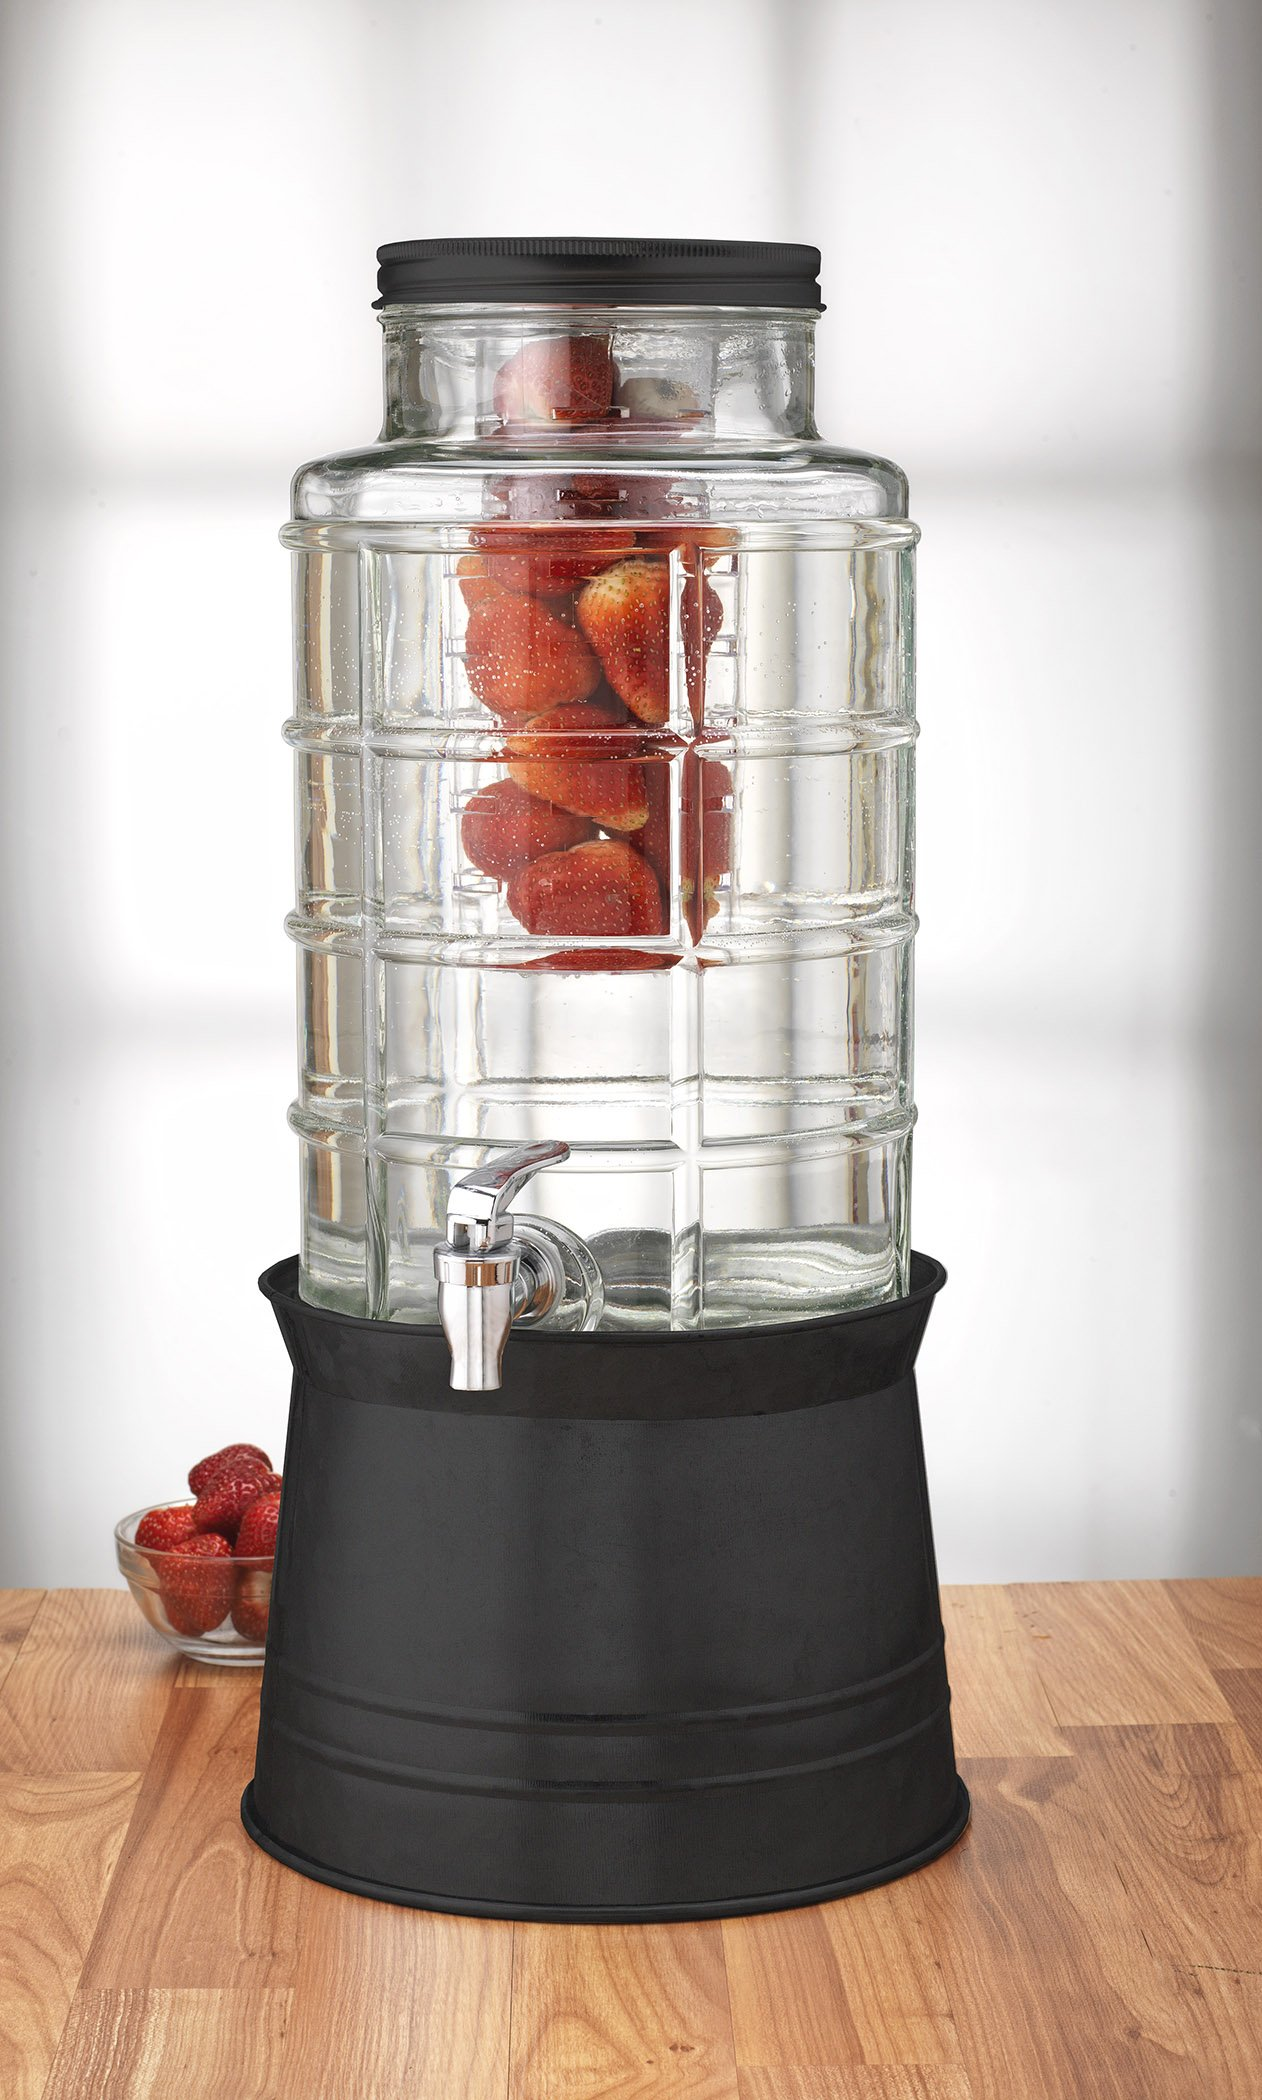 Circleware Big Window Glass Beverage Drink Dispenser with Base Metal Stand Transforms to Ice Bucket, Lid, Fruit Infuser and Ice Insert 2.4 Gallons